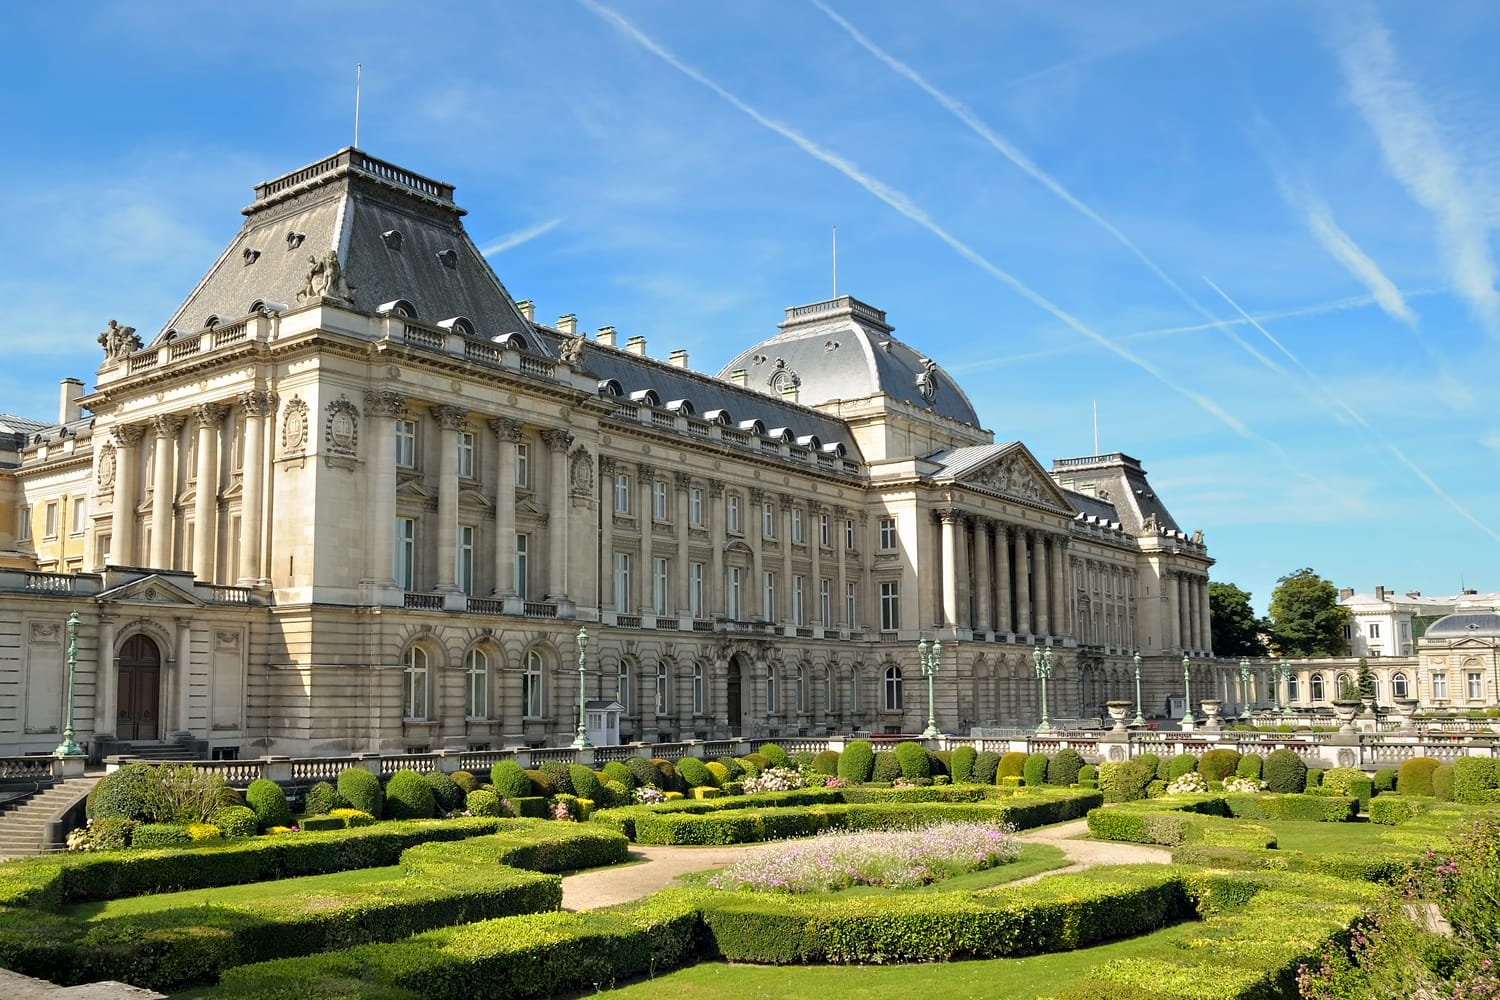 Palace of the king in historical center of Brussels, Belgium